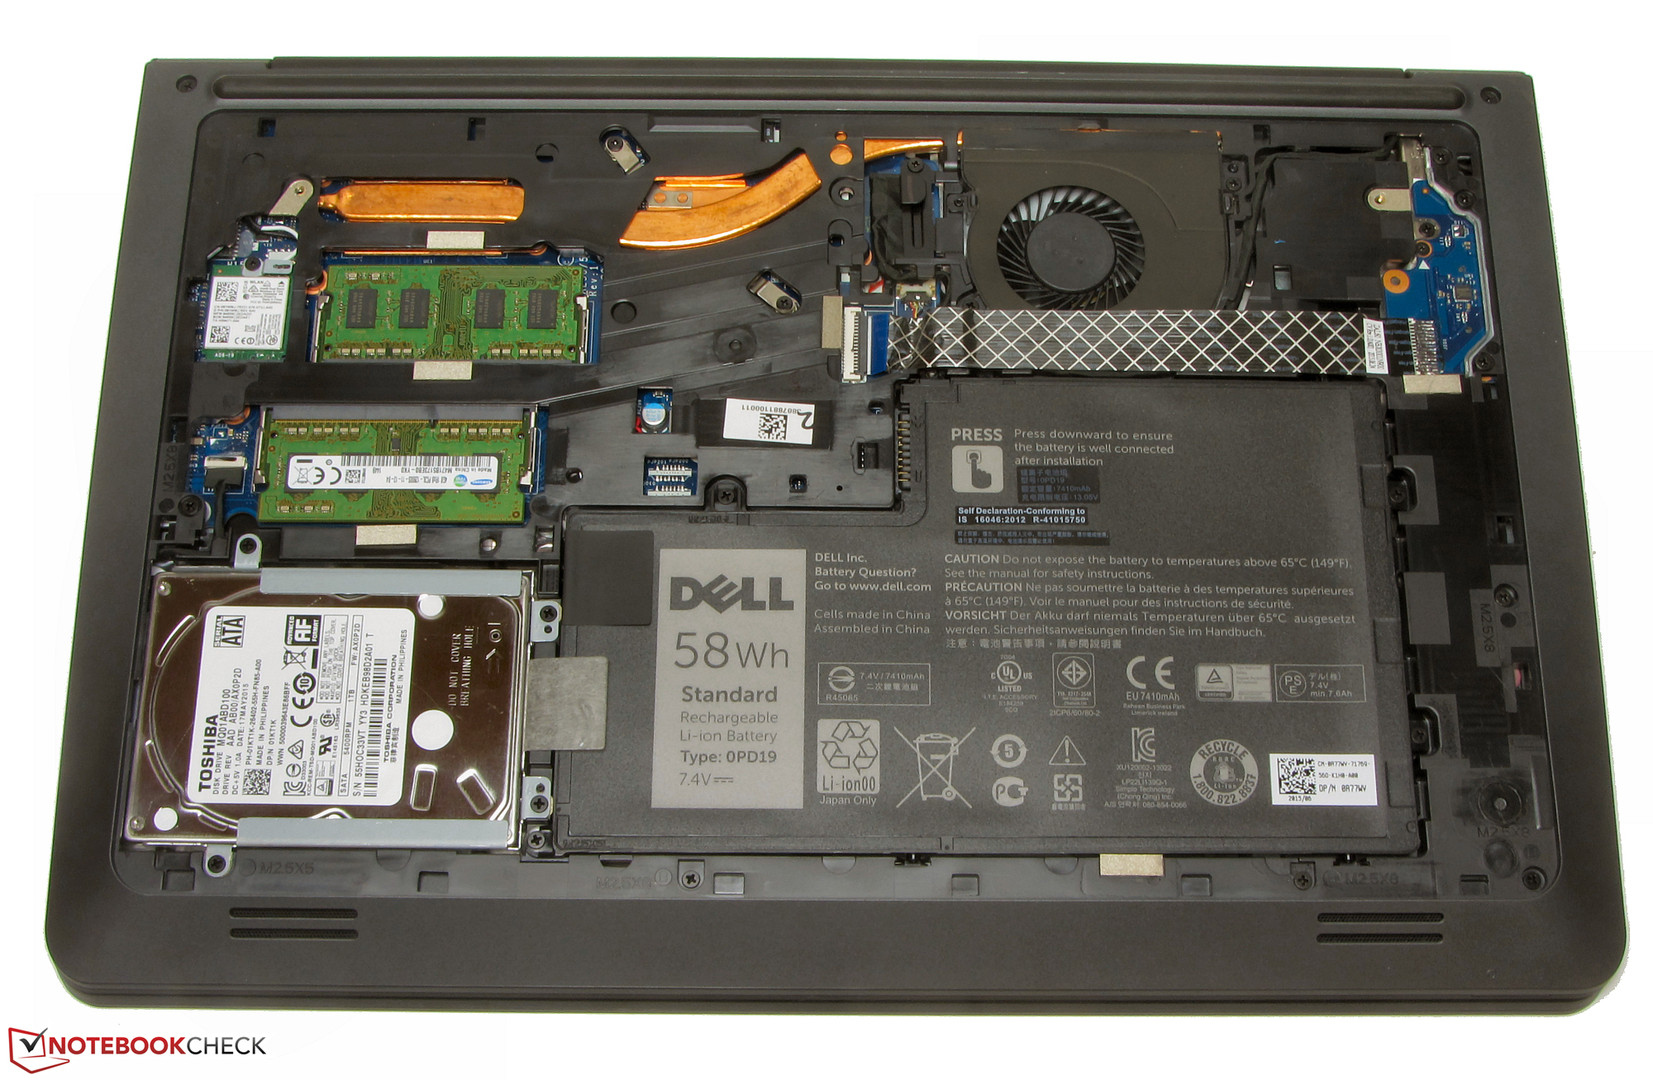 Dell Latitude 3550 0123 Notebook Review Notebookcheck